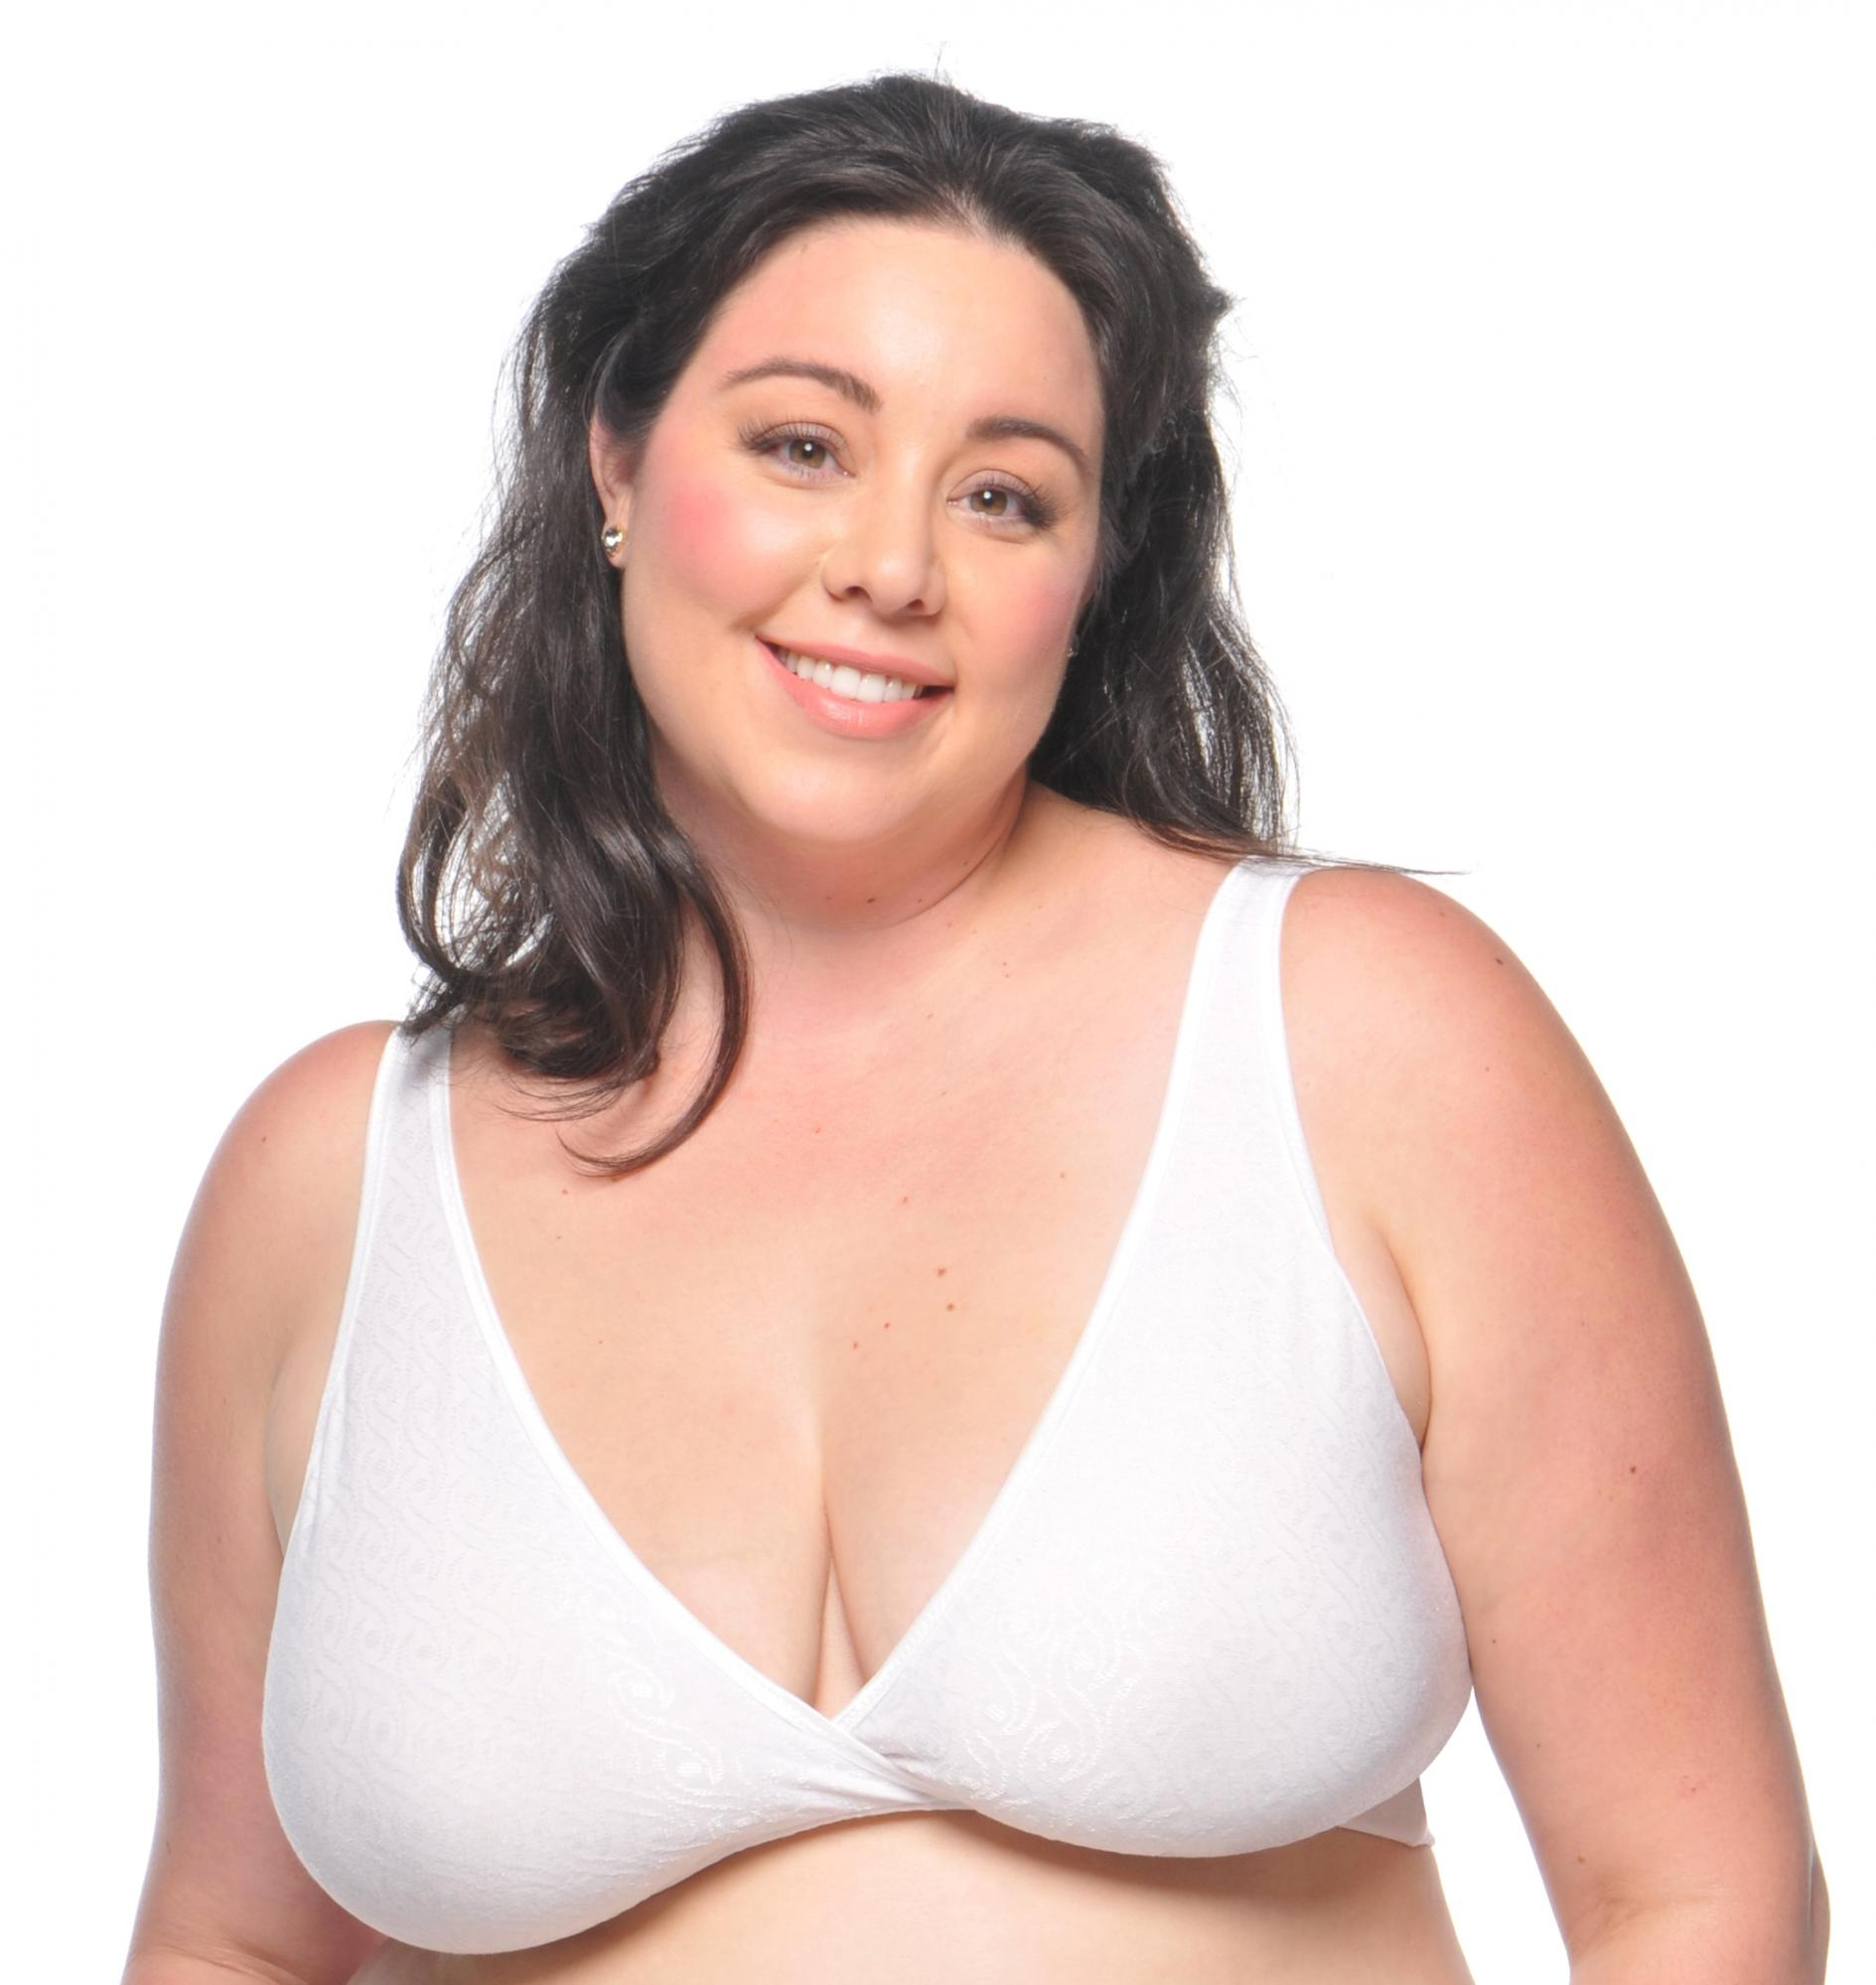 melinda-g-dreamy-sleep-nursing-bra-2188-white-2.jpg